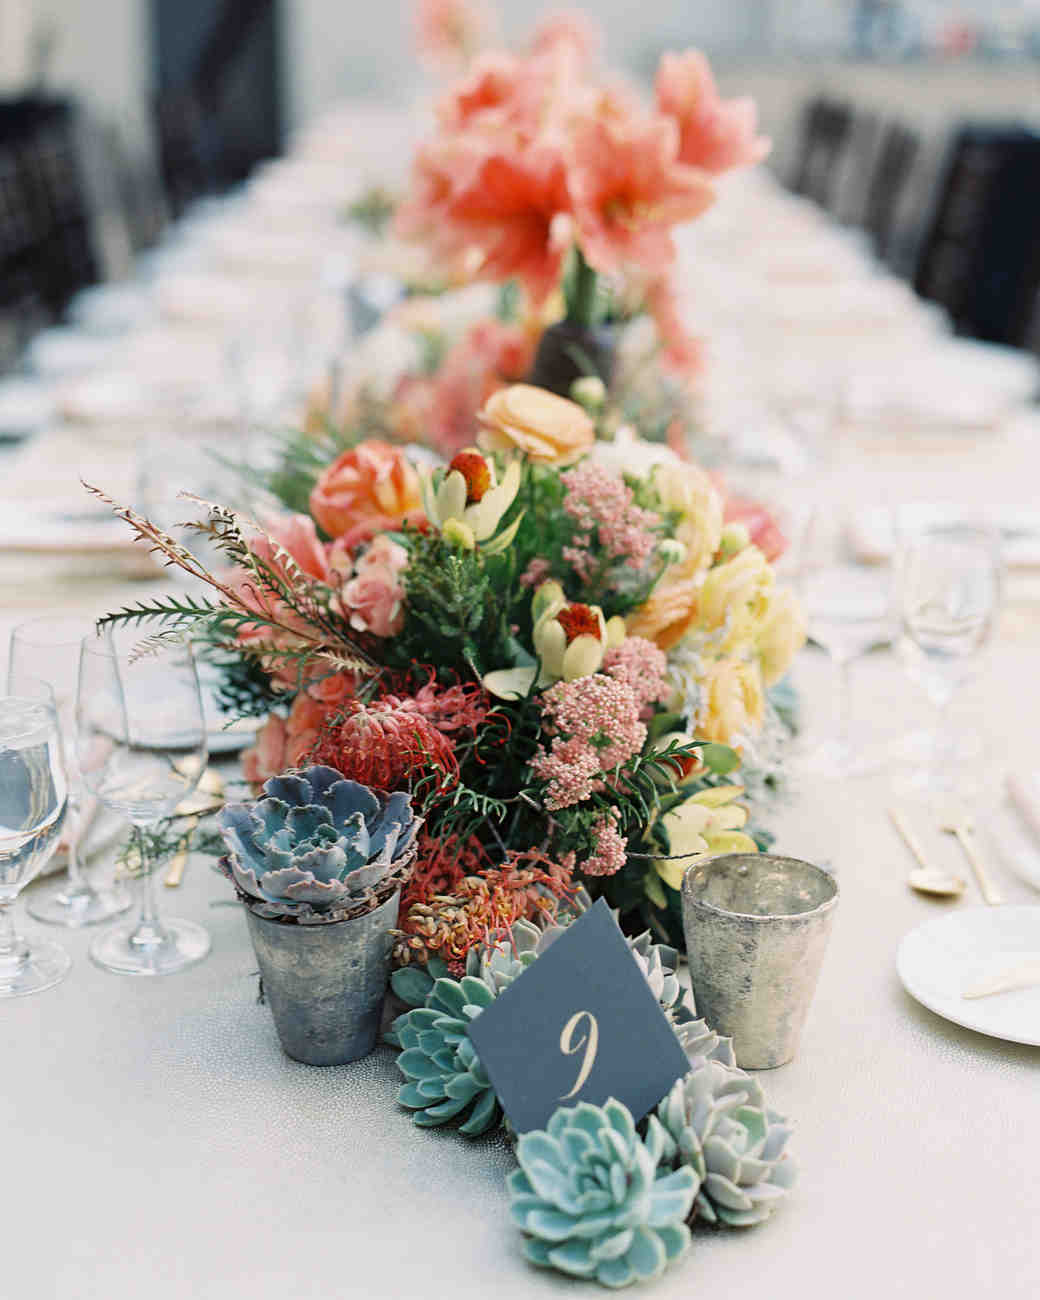 40 of our favorite floral wedding centerpieces martha stewart 40 of our favorite floral wedding centerpieces martha stewart weddings junglespirit Choice Image